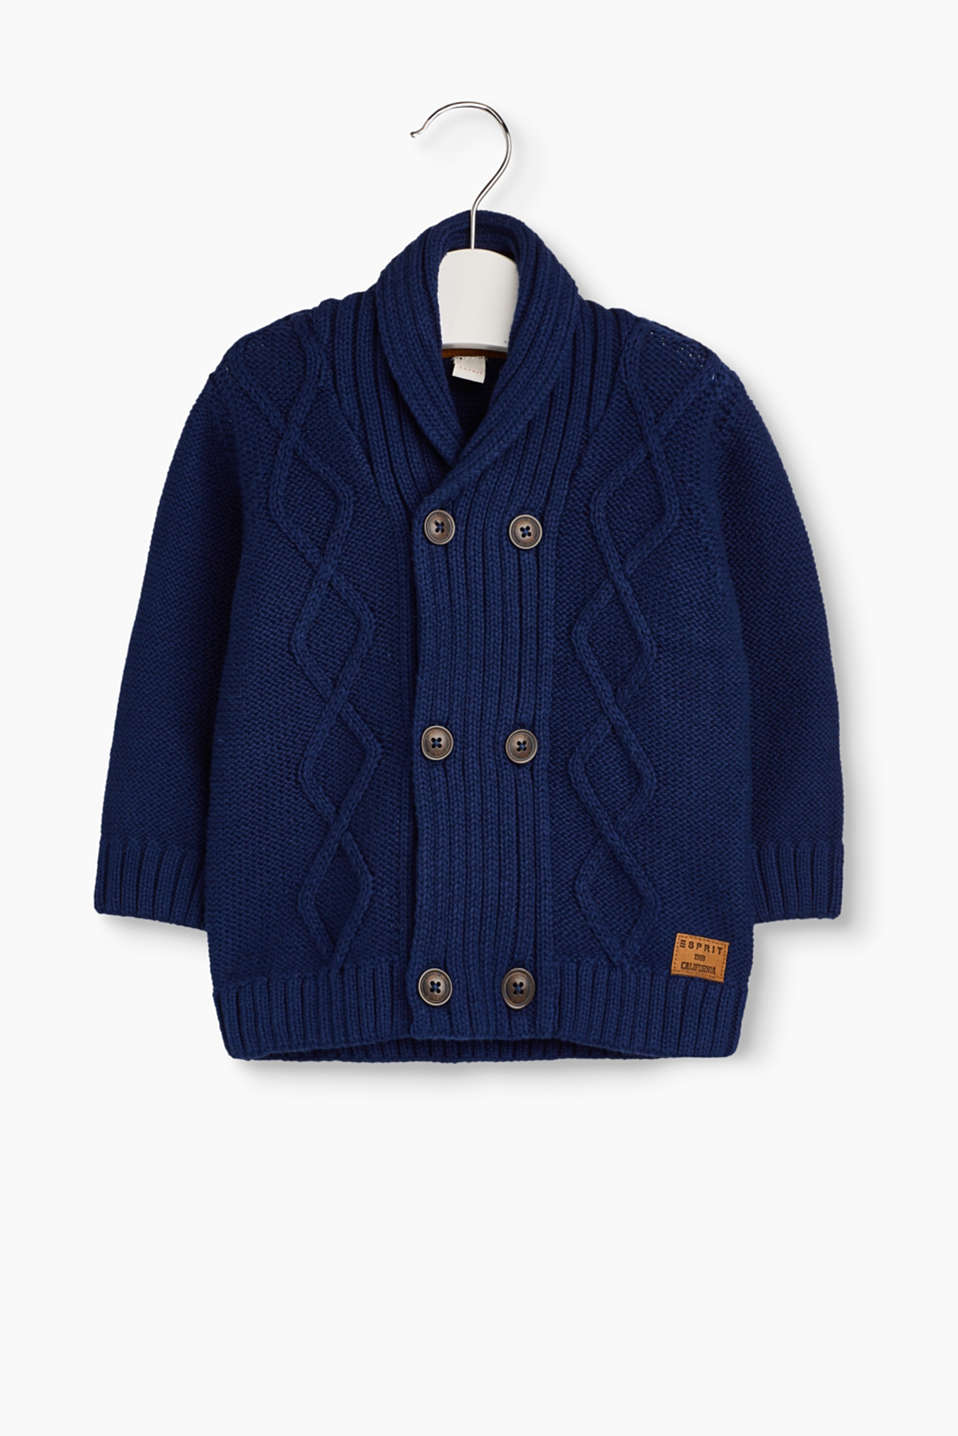 Stay nice and warm! This knitted cardigan gets a rustic note from its shawl collar and the cable pattern.